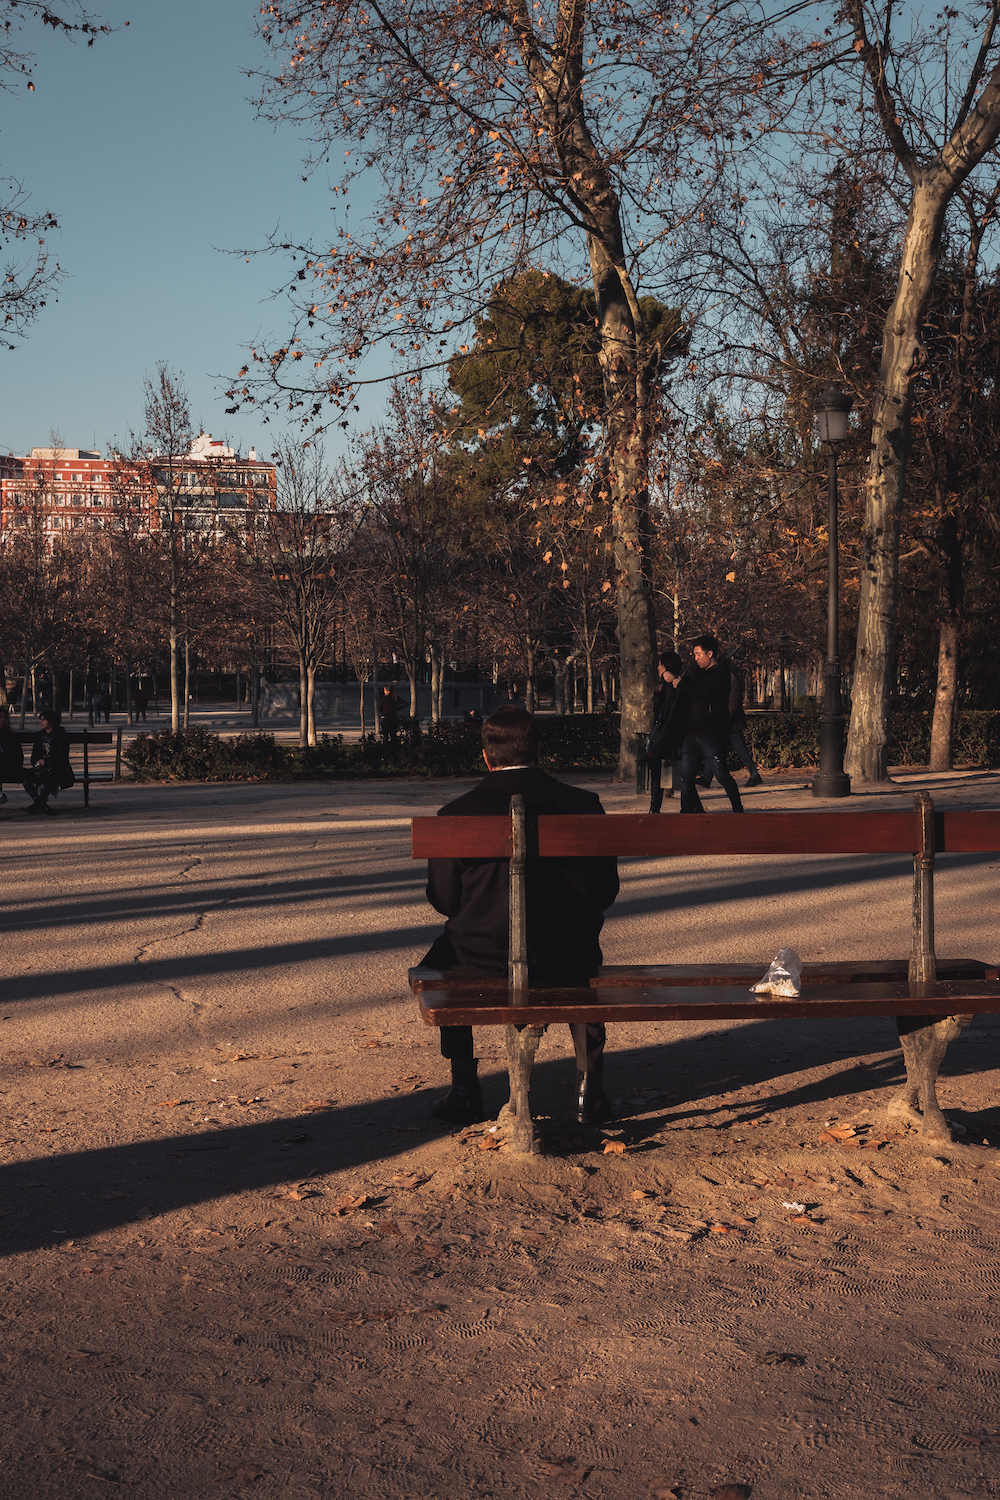 Rowing boats in El Retiro Park, Madrid Street Photography Essay - by Ben Holbrook DriftwoodJournals.com-9268